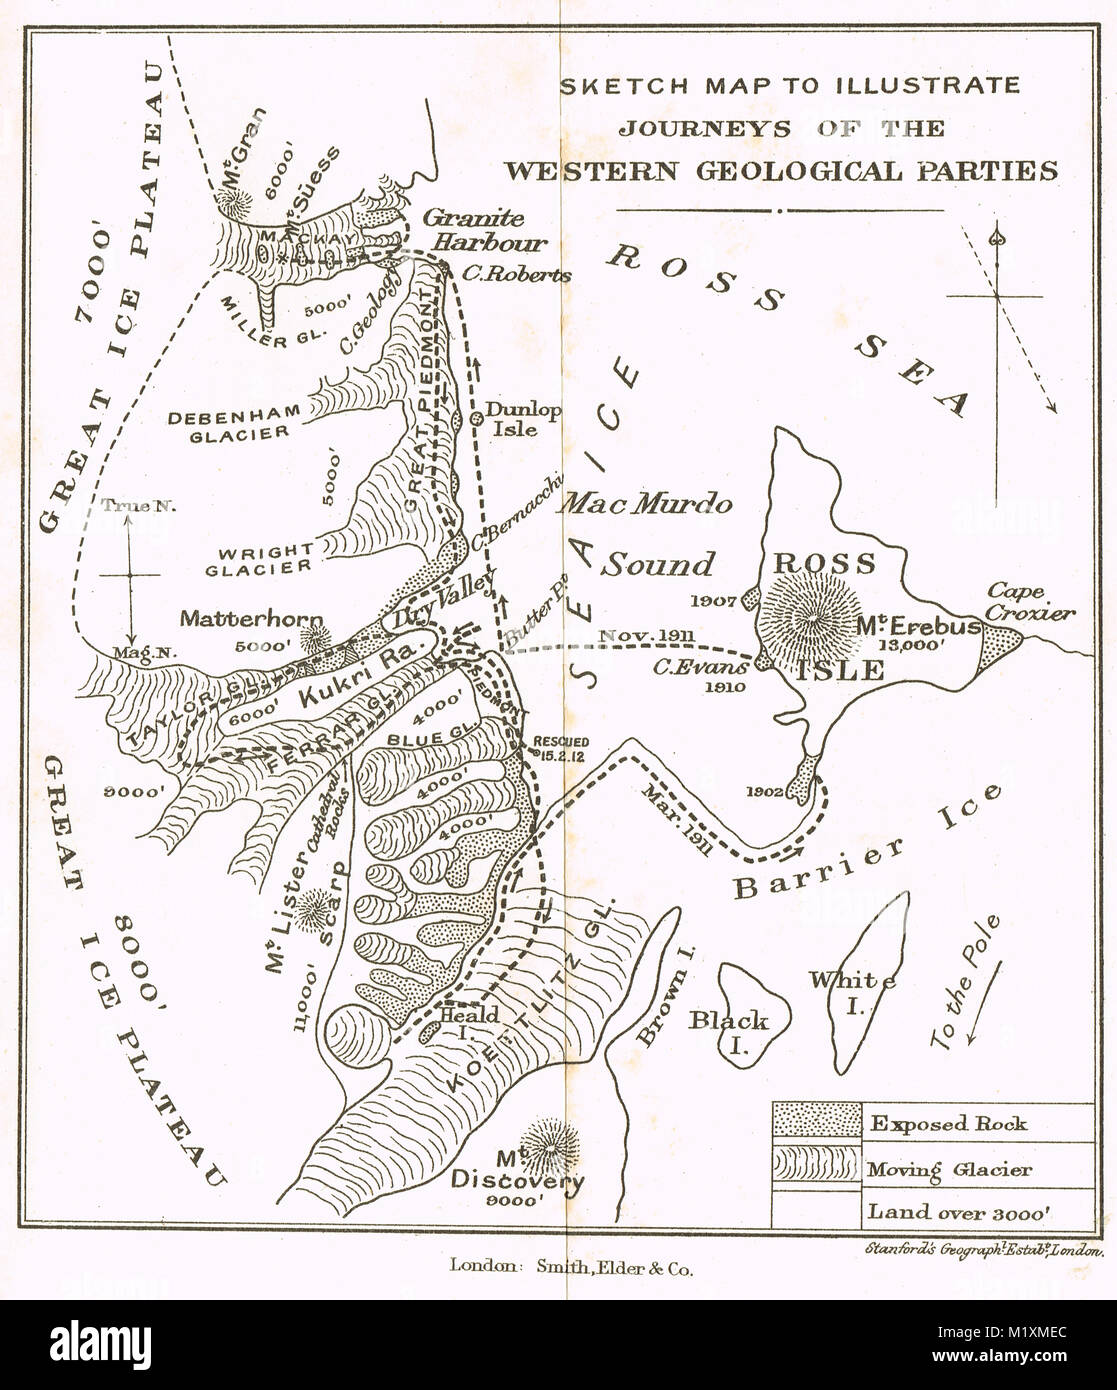 Sketch map, Journeys of the Western geological parties, 1911-12, Scott's final expedition - Stock Image